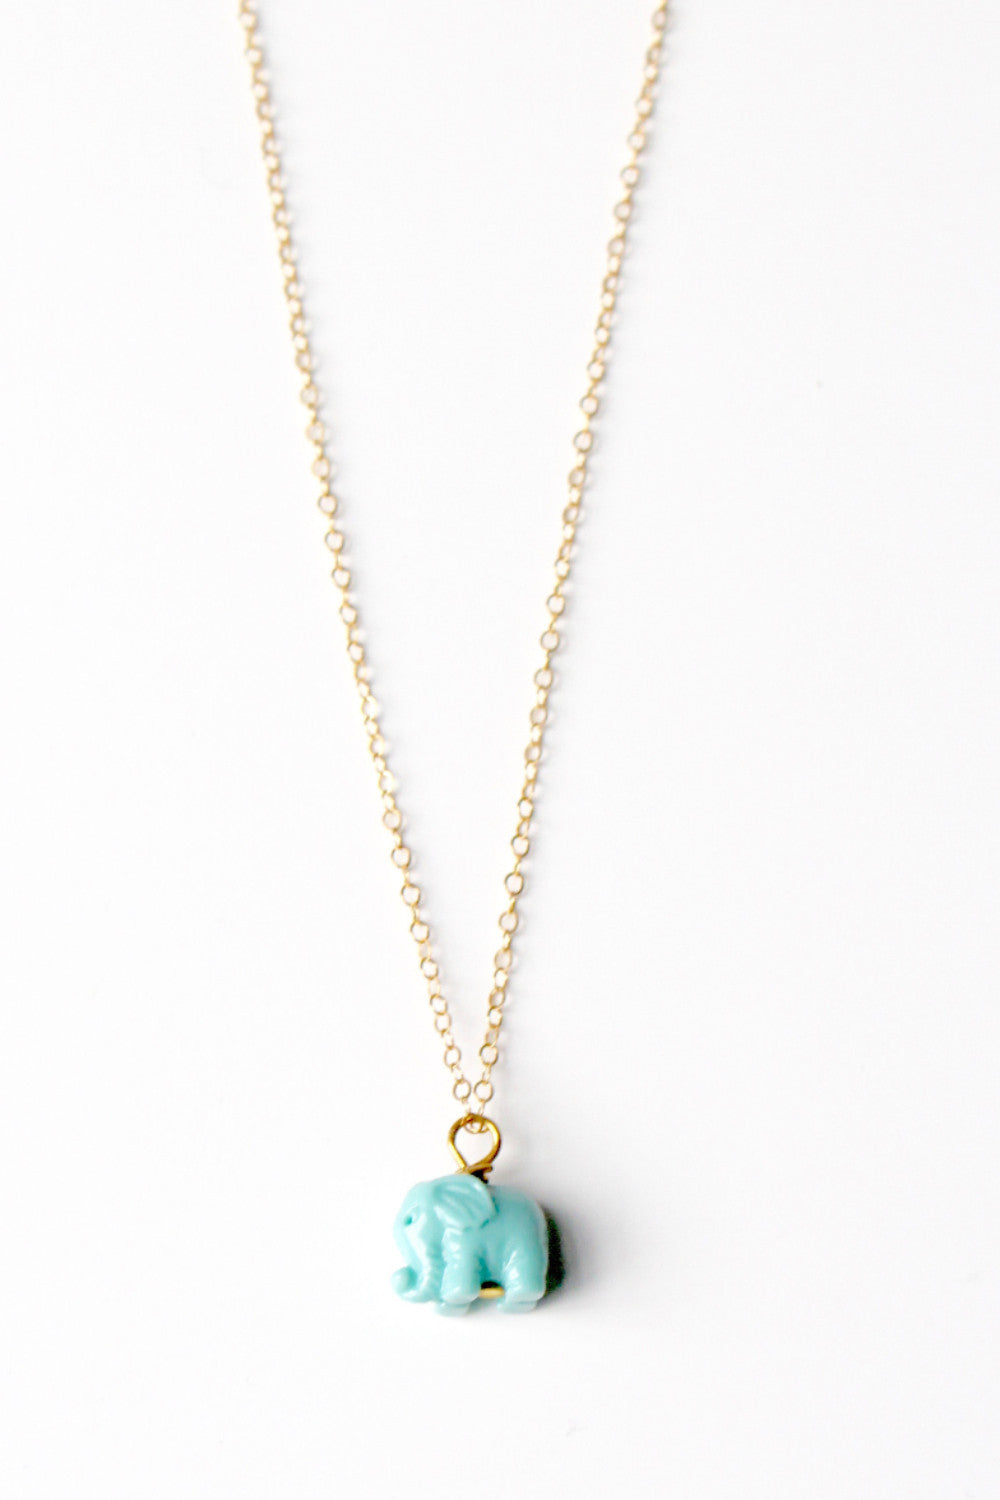 Good Luck Elephant Necklace • Teal